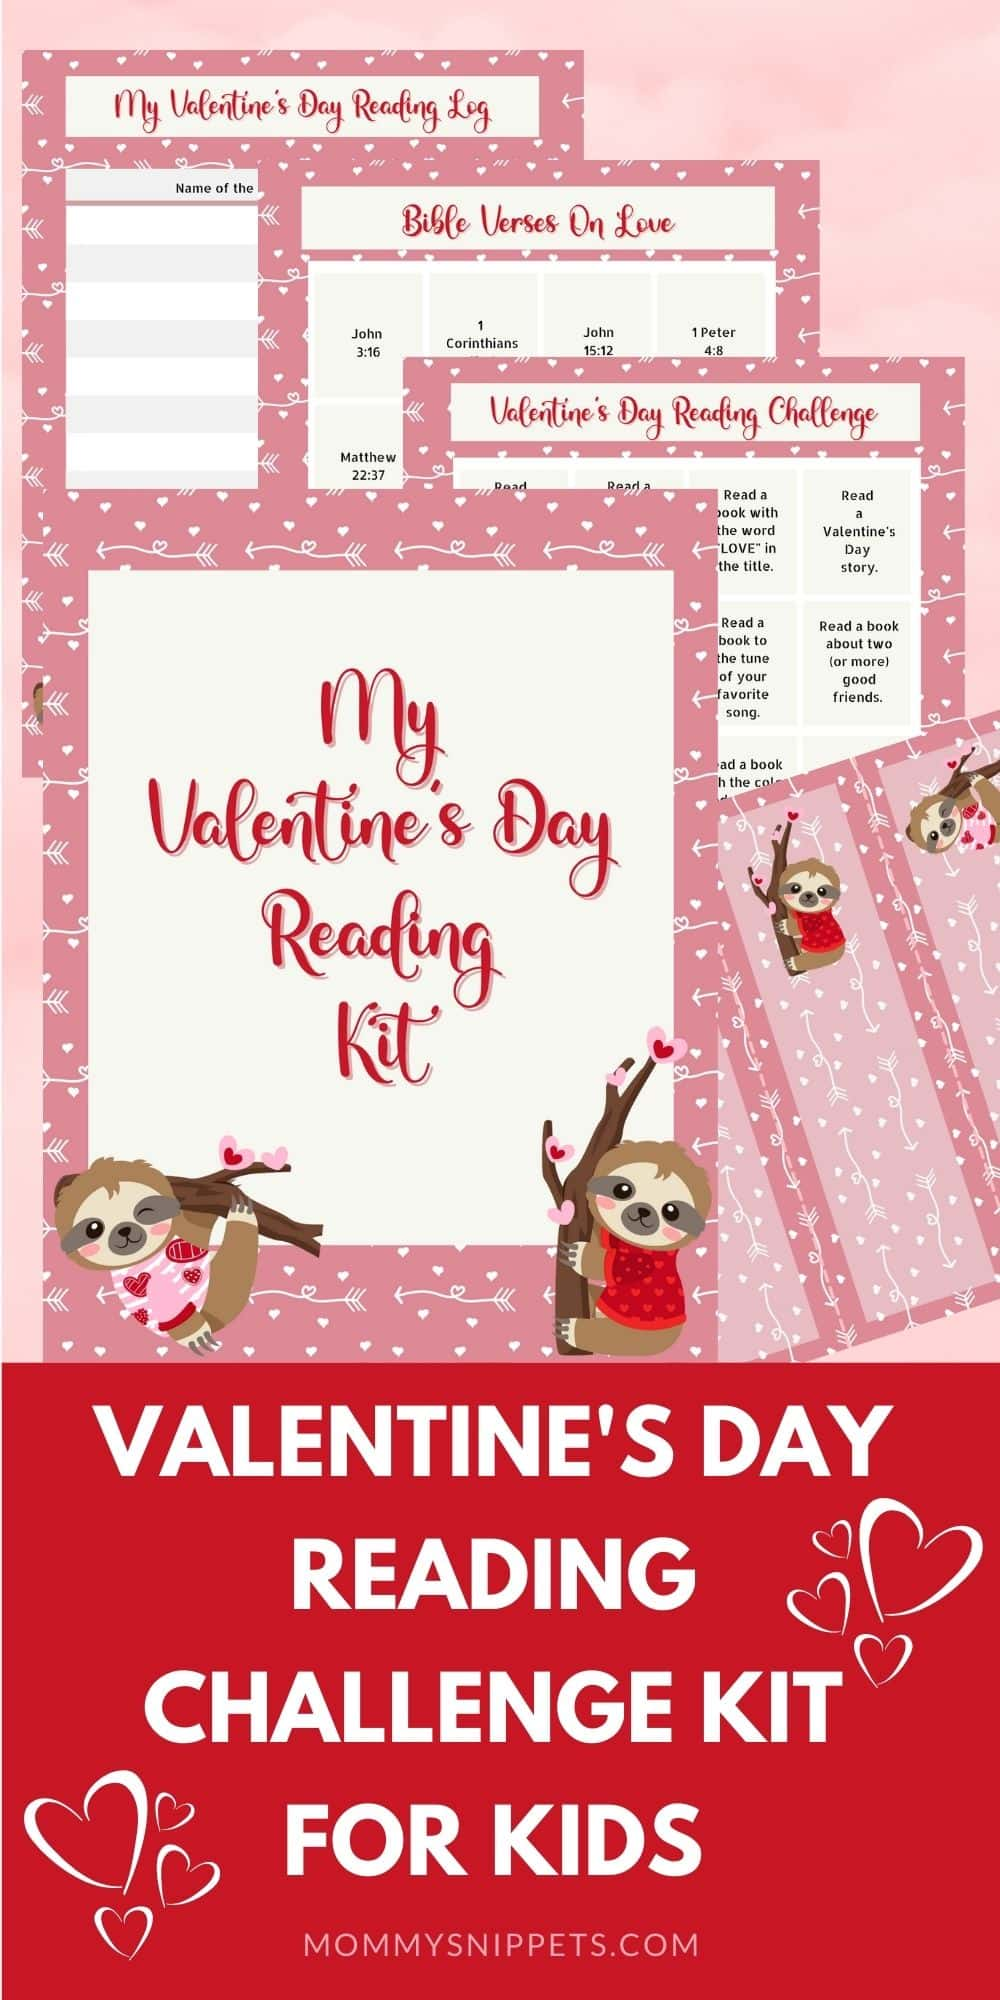 Valentine's Day Reading Challenge Kit for Kids- Mommy Snippets